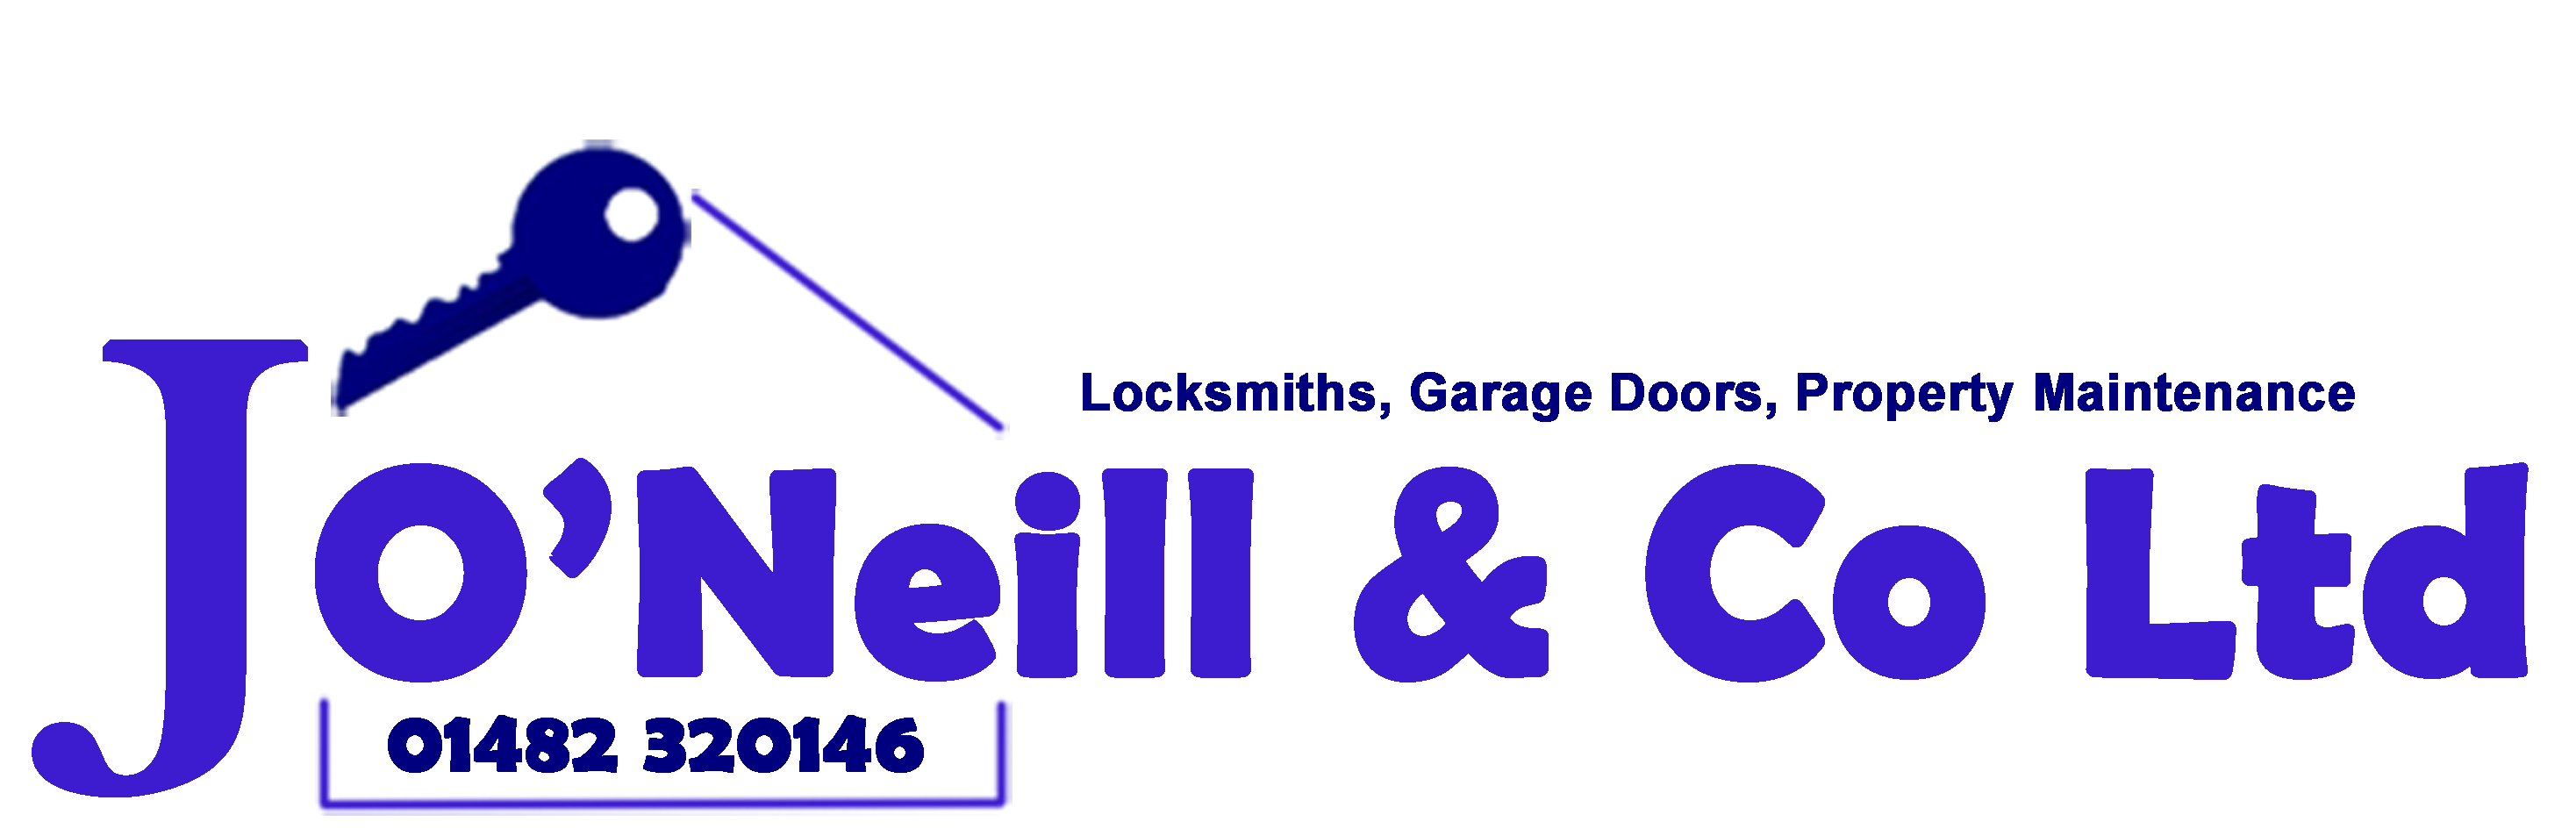 J O'Neill & Co Ltd